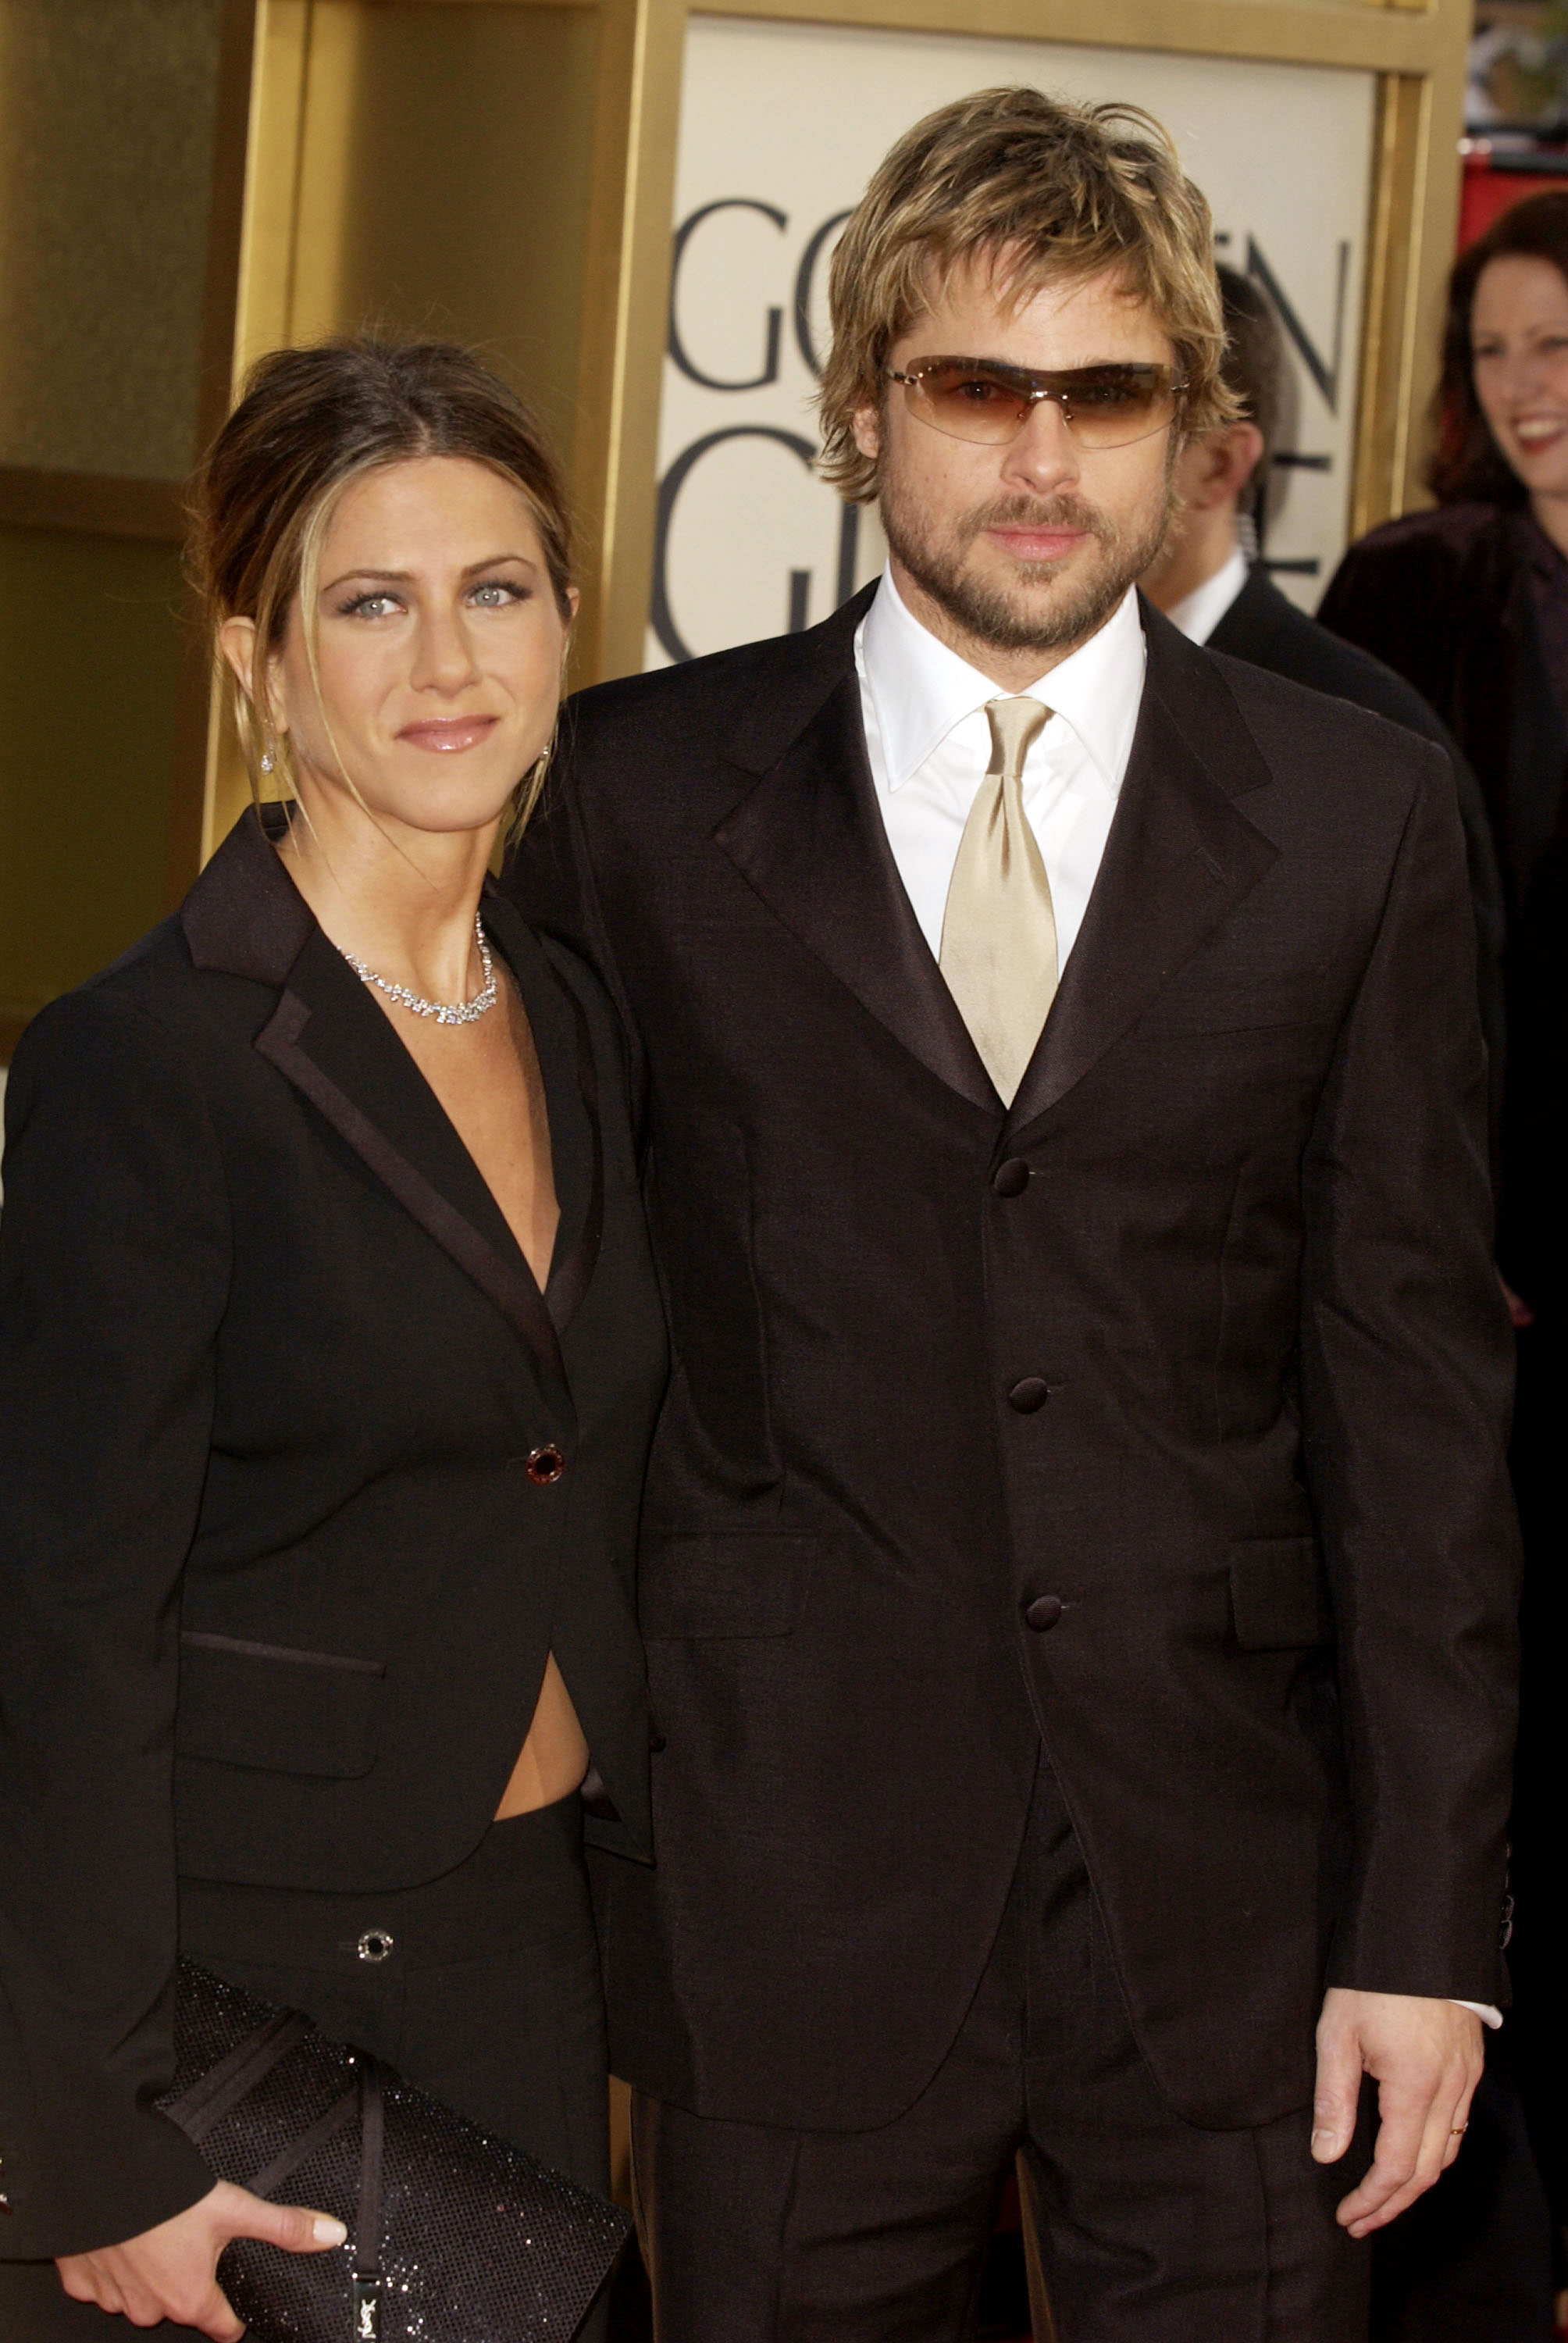 Brad Pitt and Jennifer Aniston Relationship Timeline - The happy couple made their way to the 59th Golden Globe Awards, where Aniston was nominated for Best Supporting Actress - Series, Miniseries or Television Film and Friends was nominated for Best Television Series – Musical or Comedy. Neither took home their respective trophies.